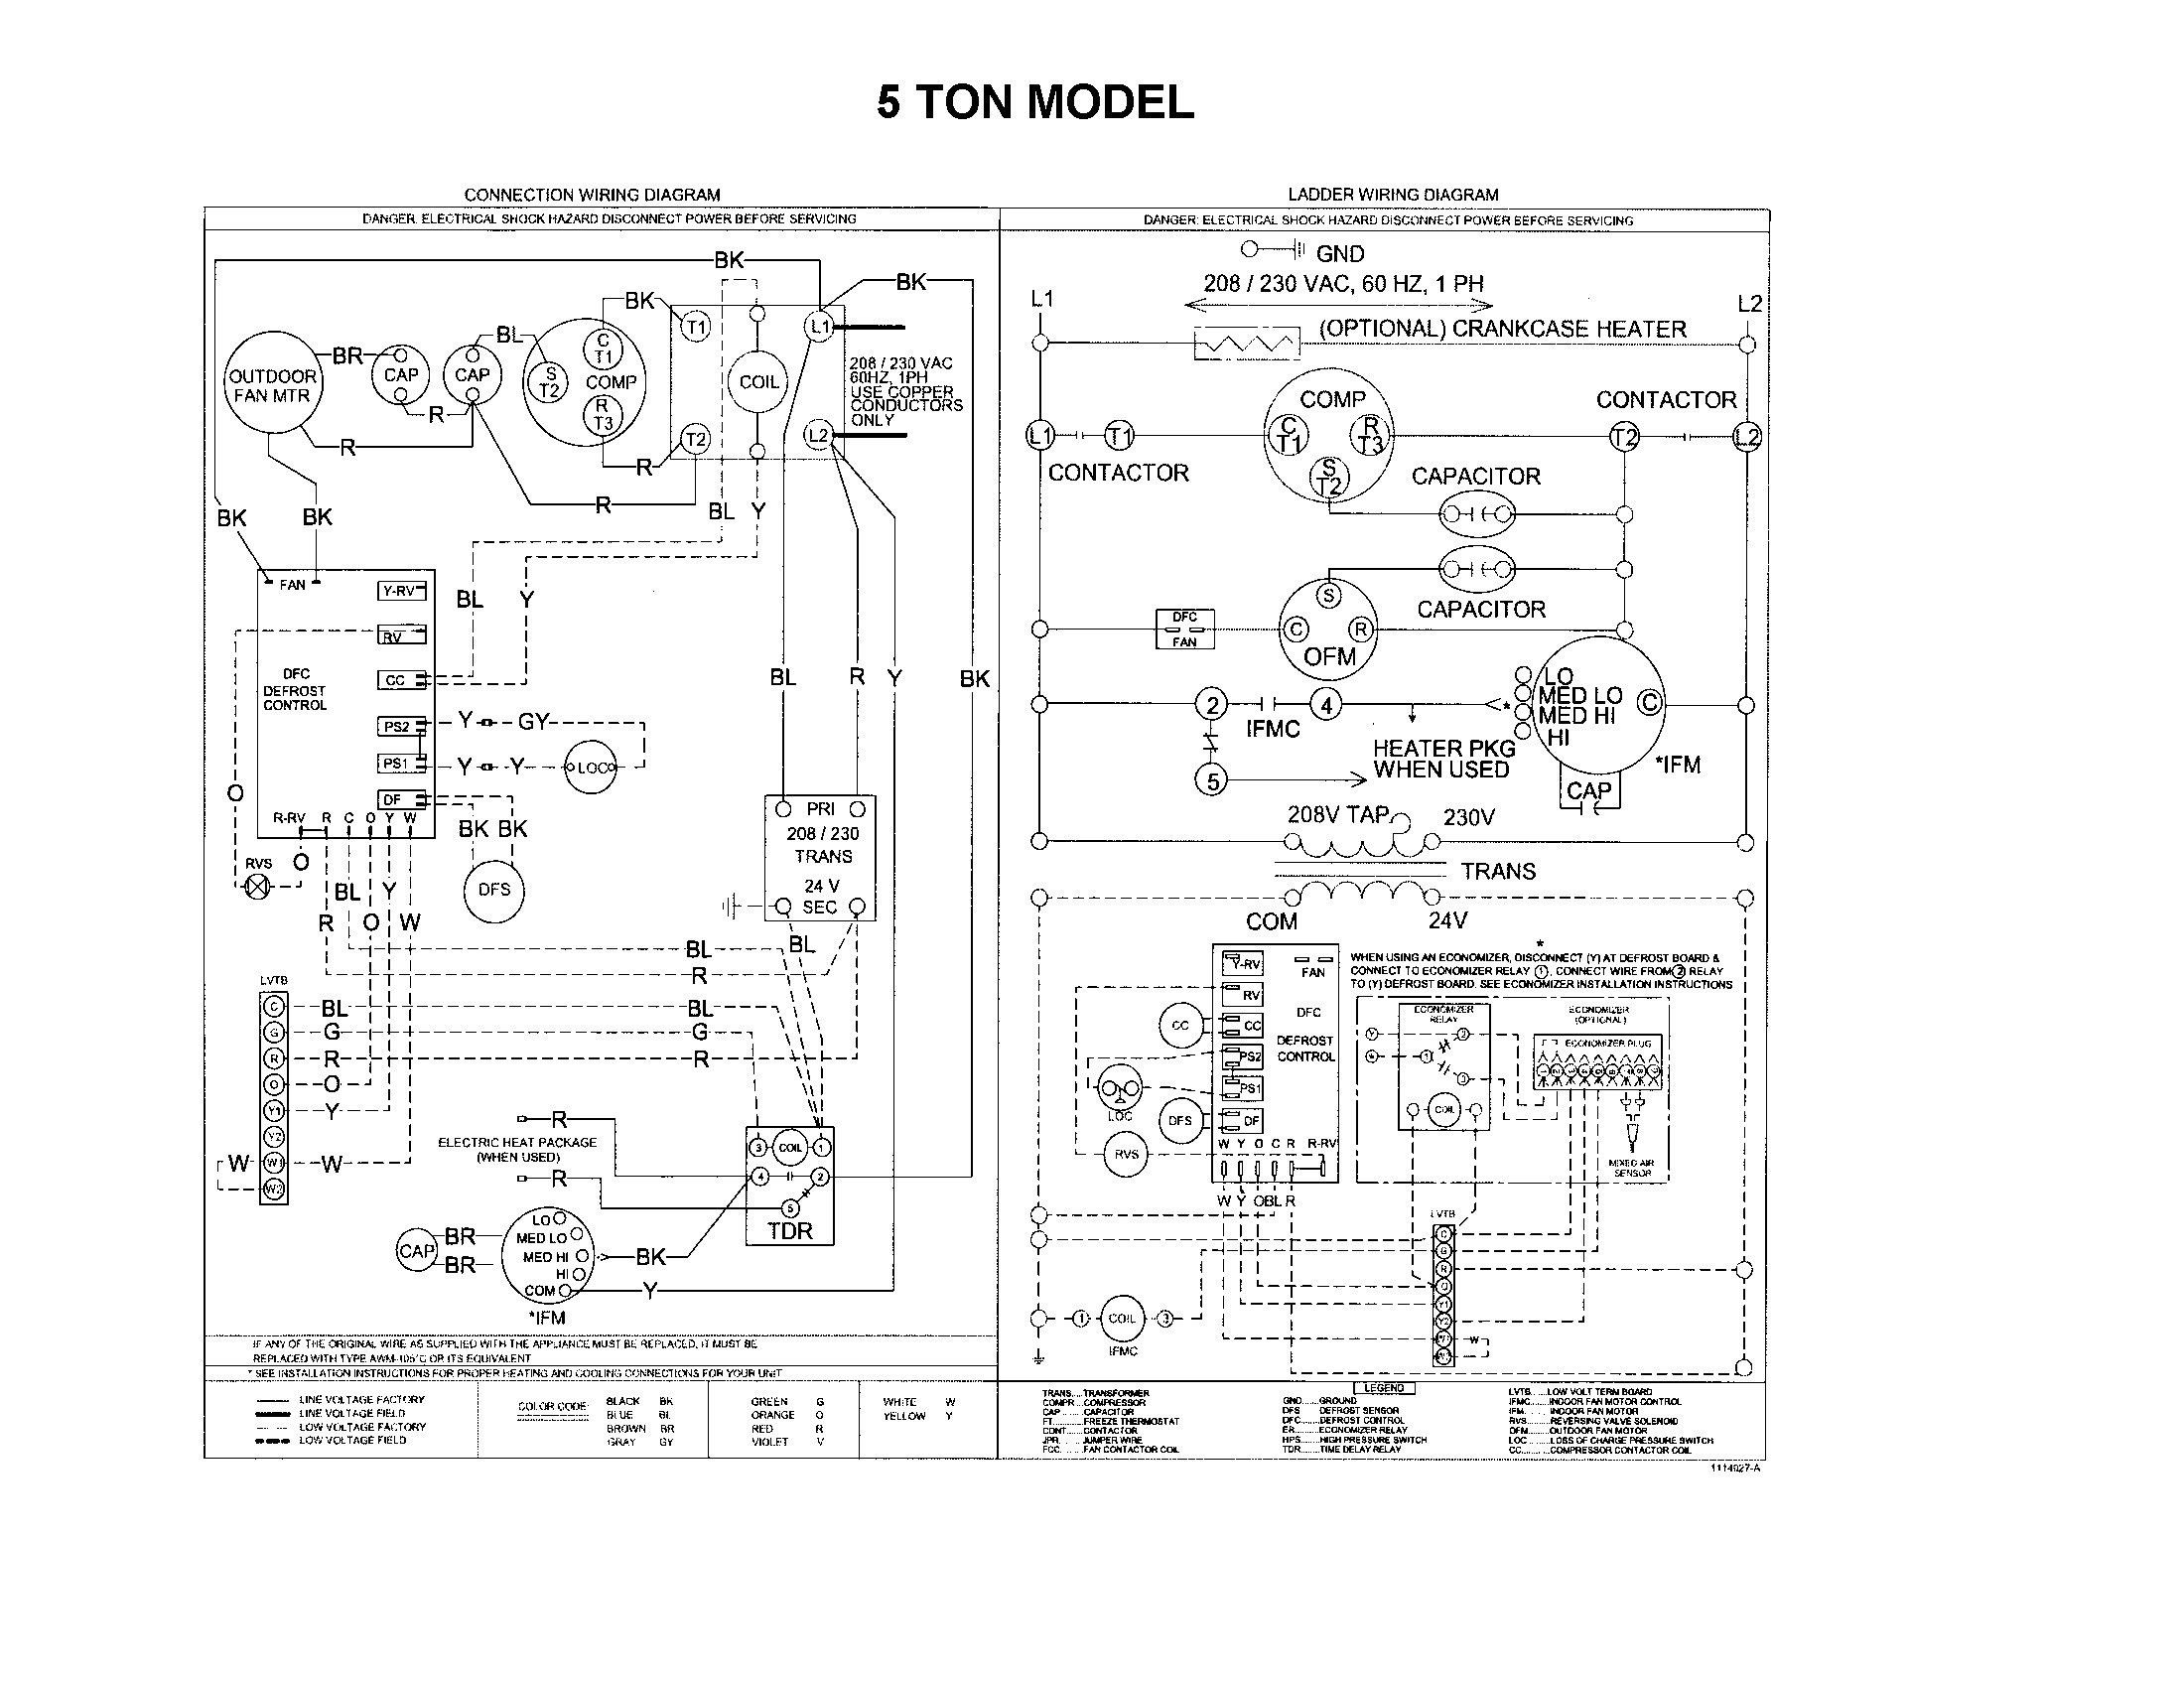 New Wiring Diagram Ruud Ac Unit